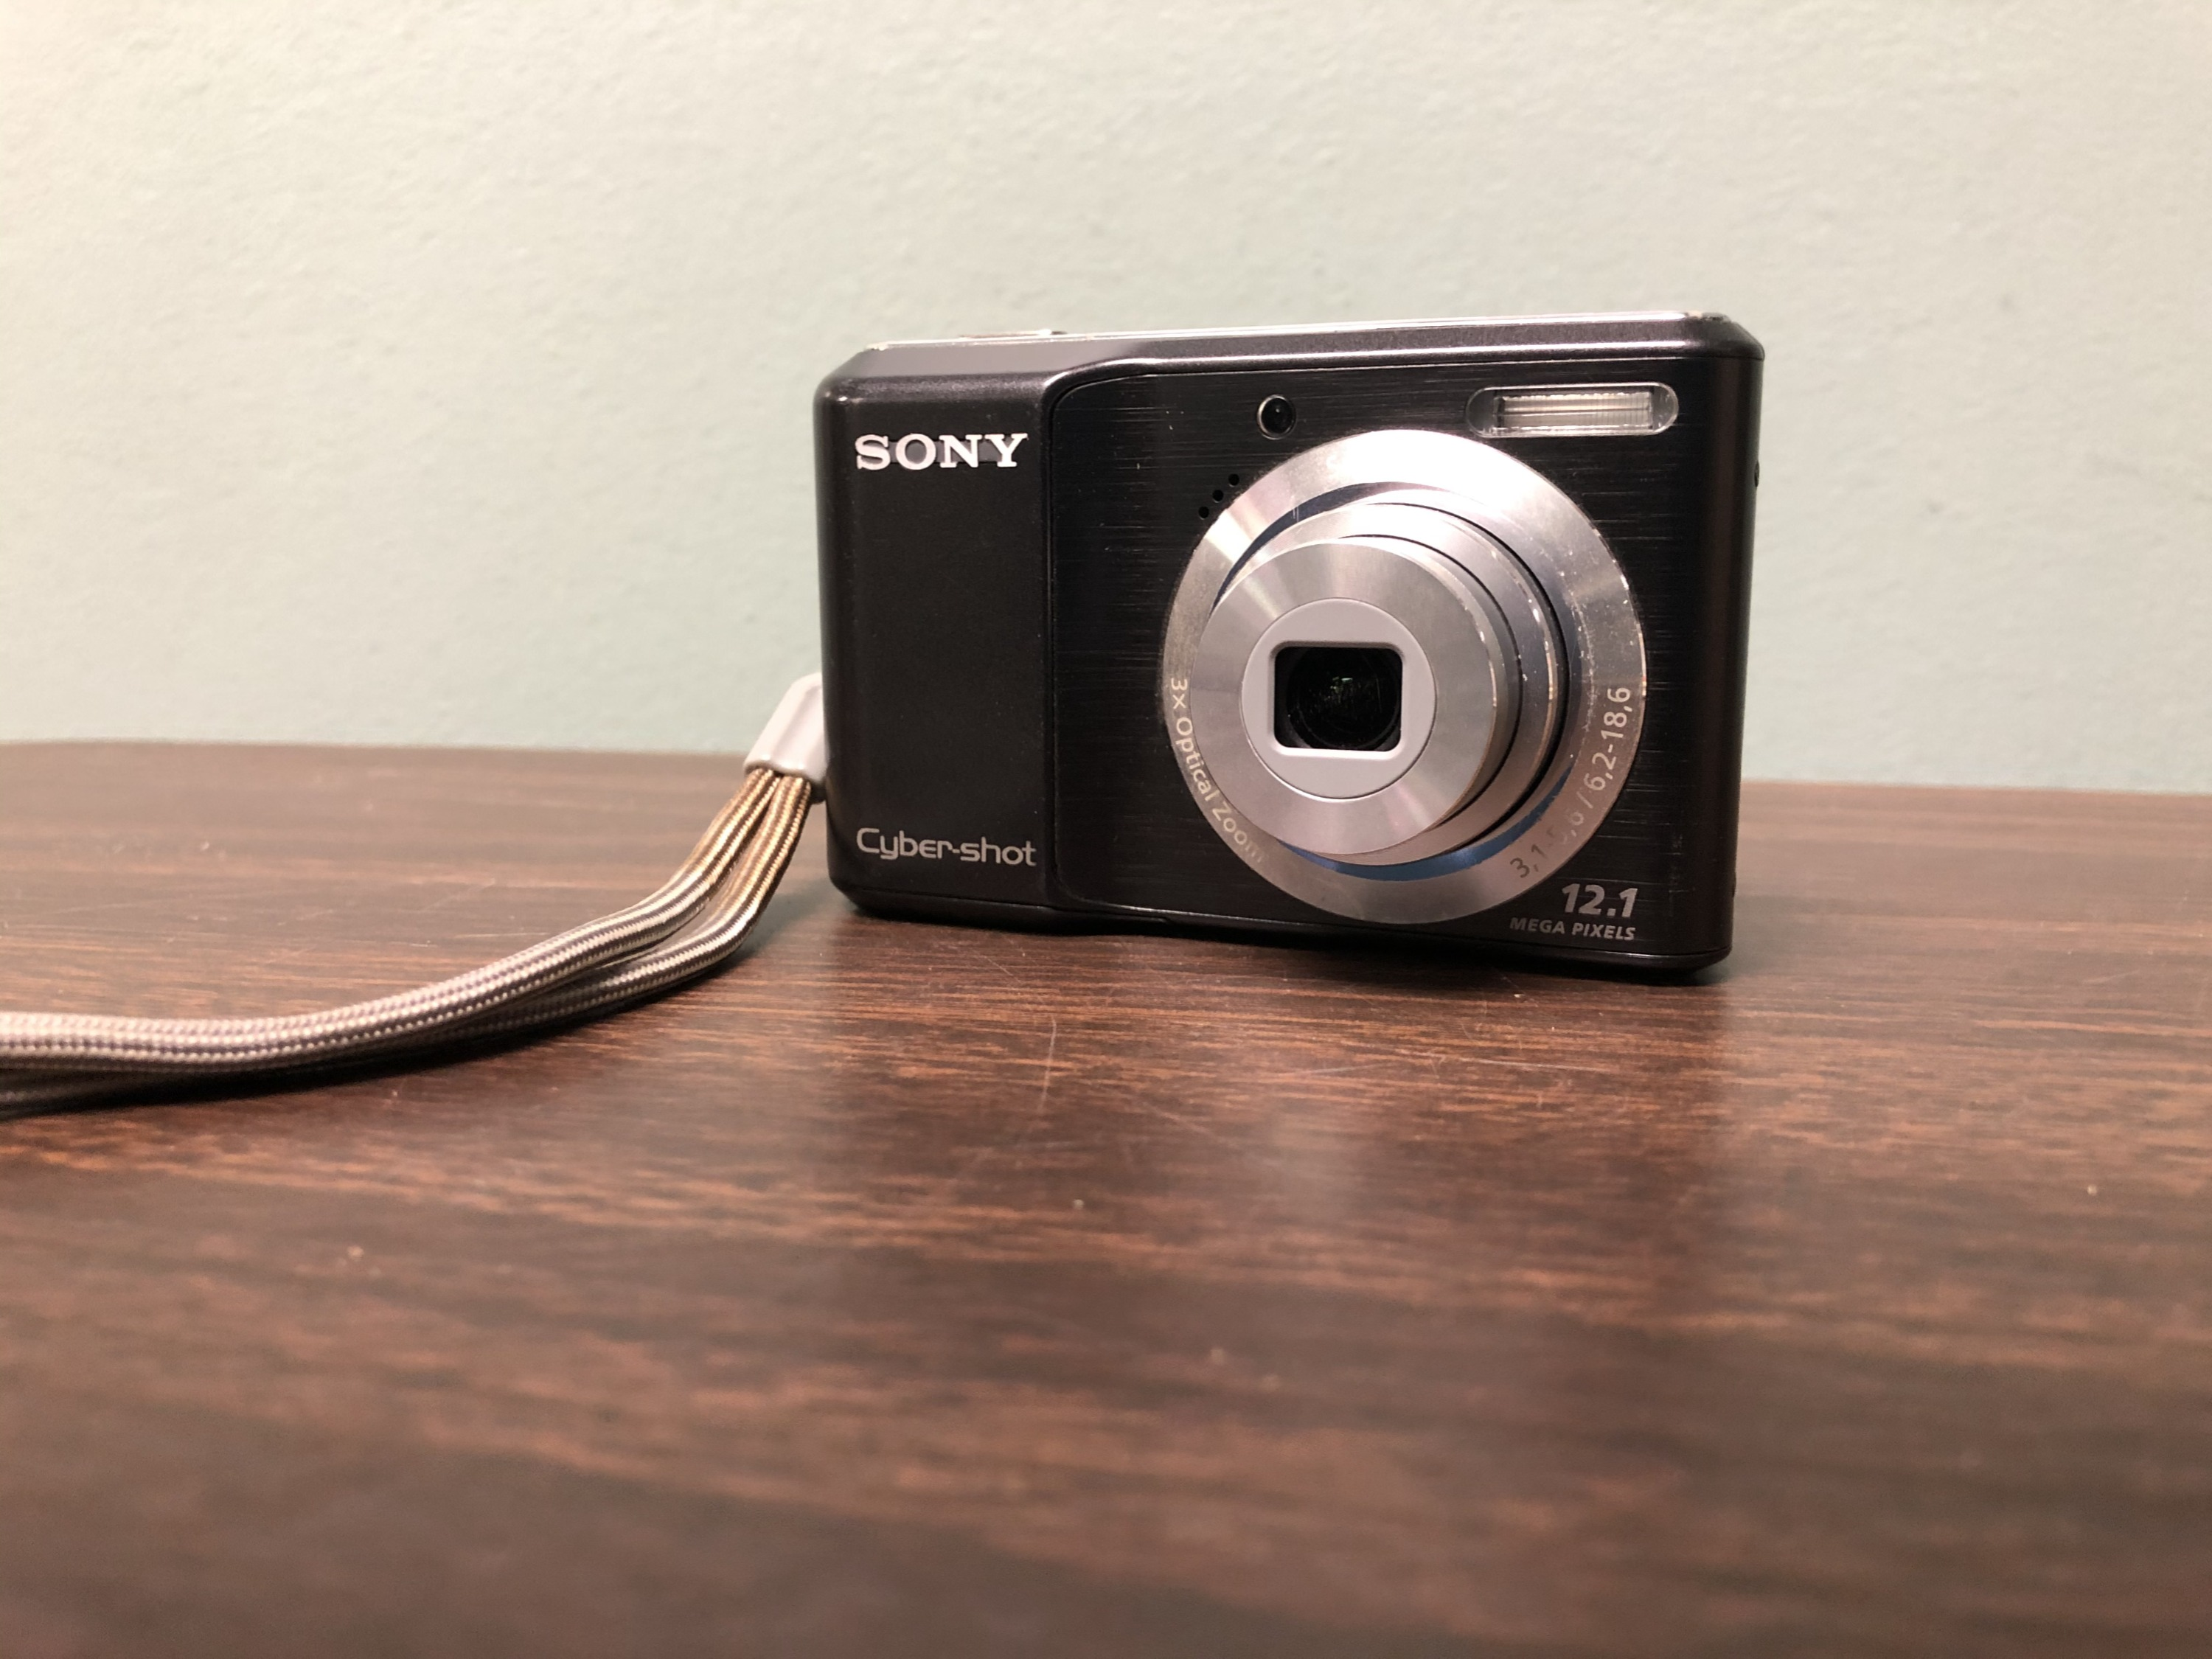 Sony Cyber-Shot Digital Camera (functional)